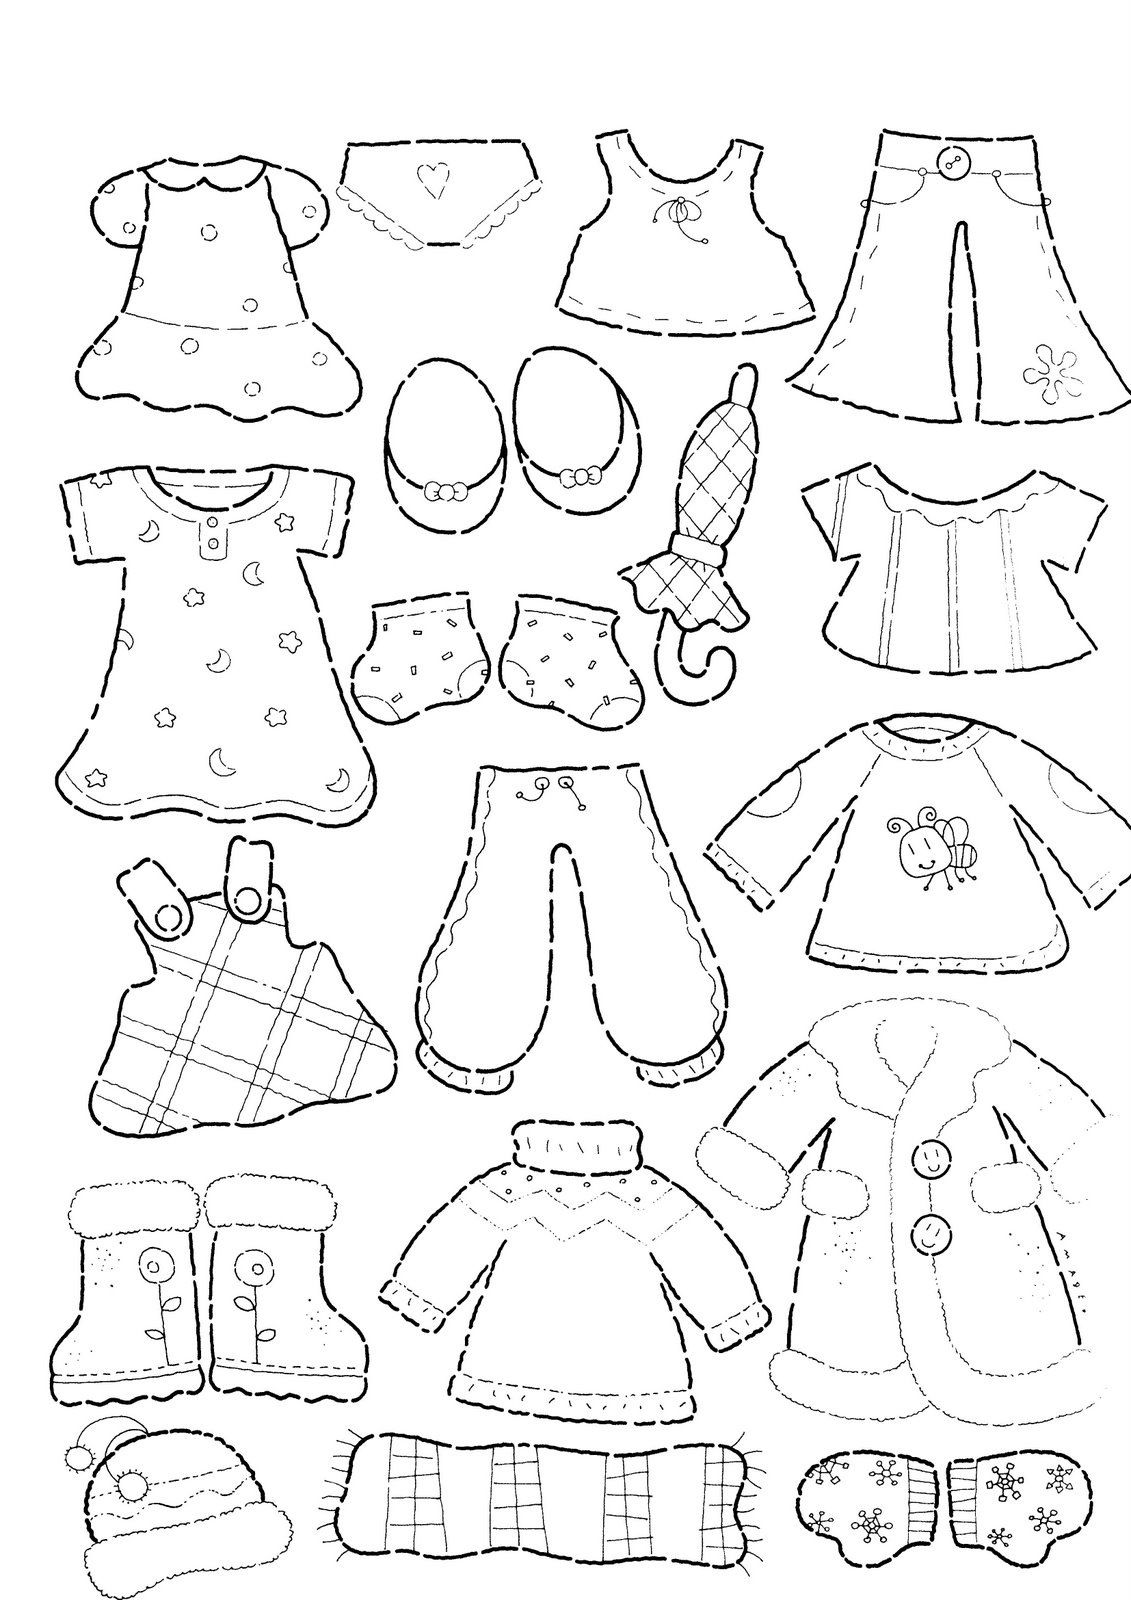 Worksheet La Ropa Worksheet Carlos Lomas Worksheet For Everyone